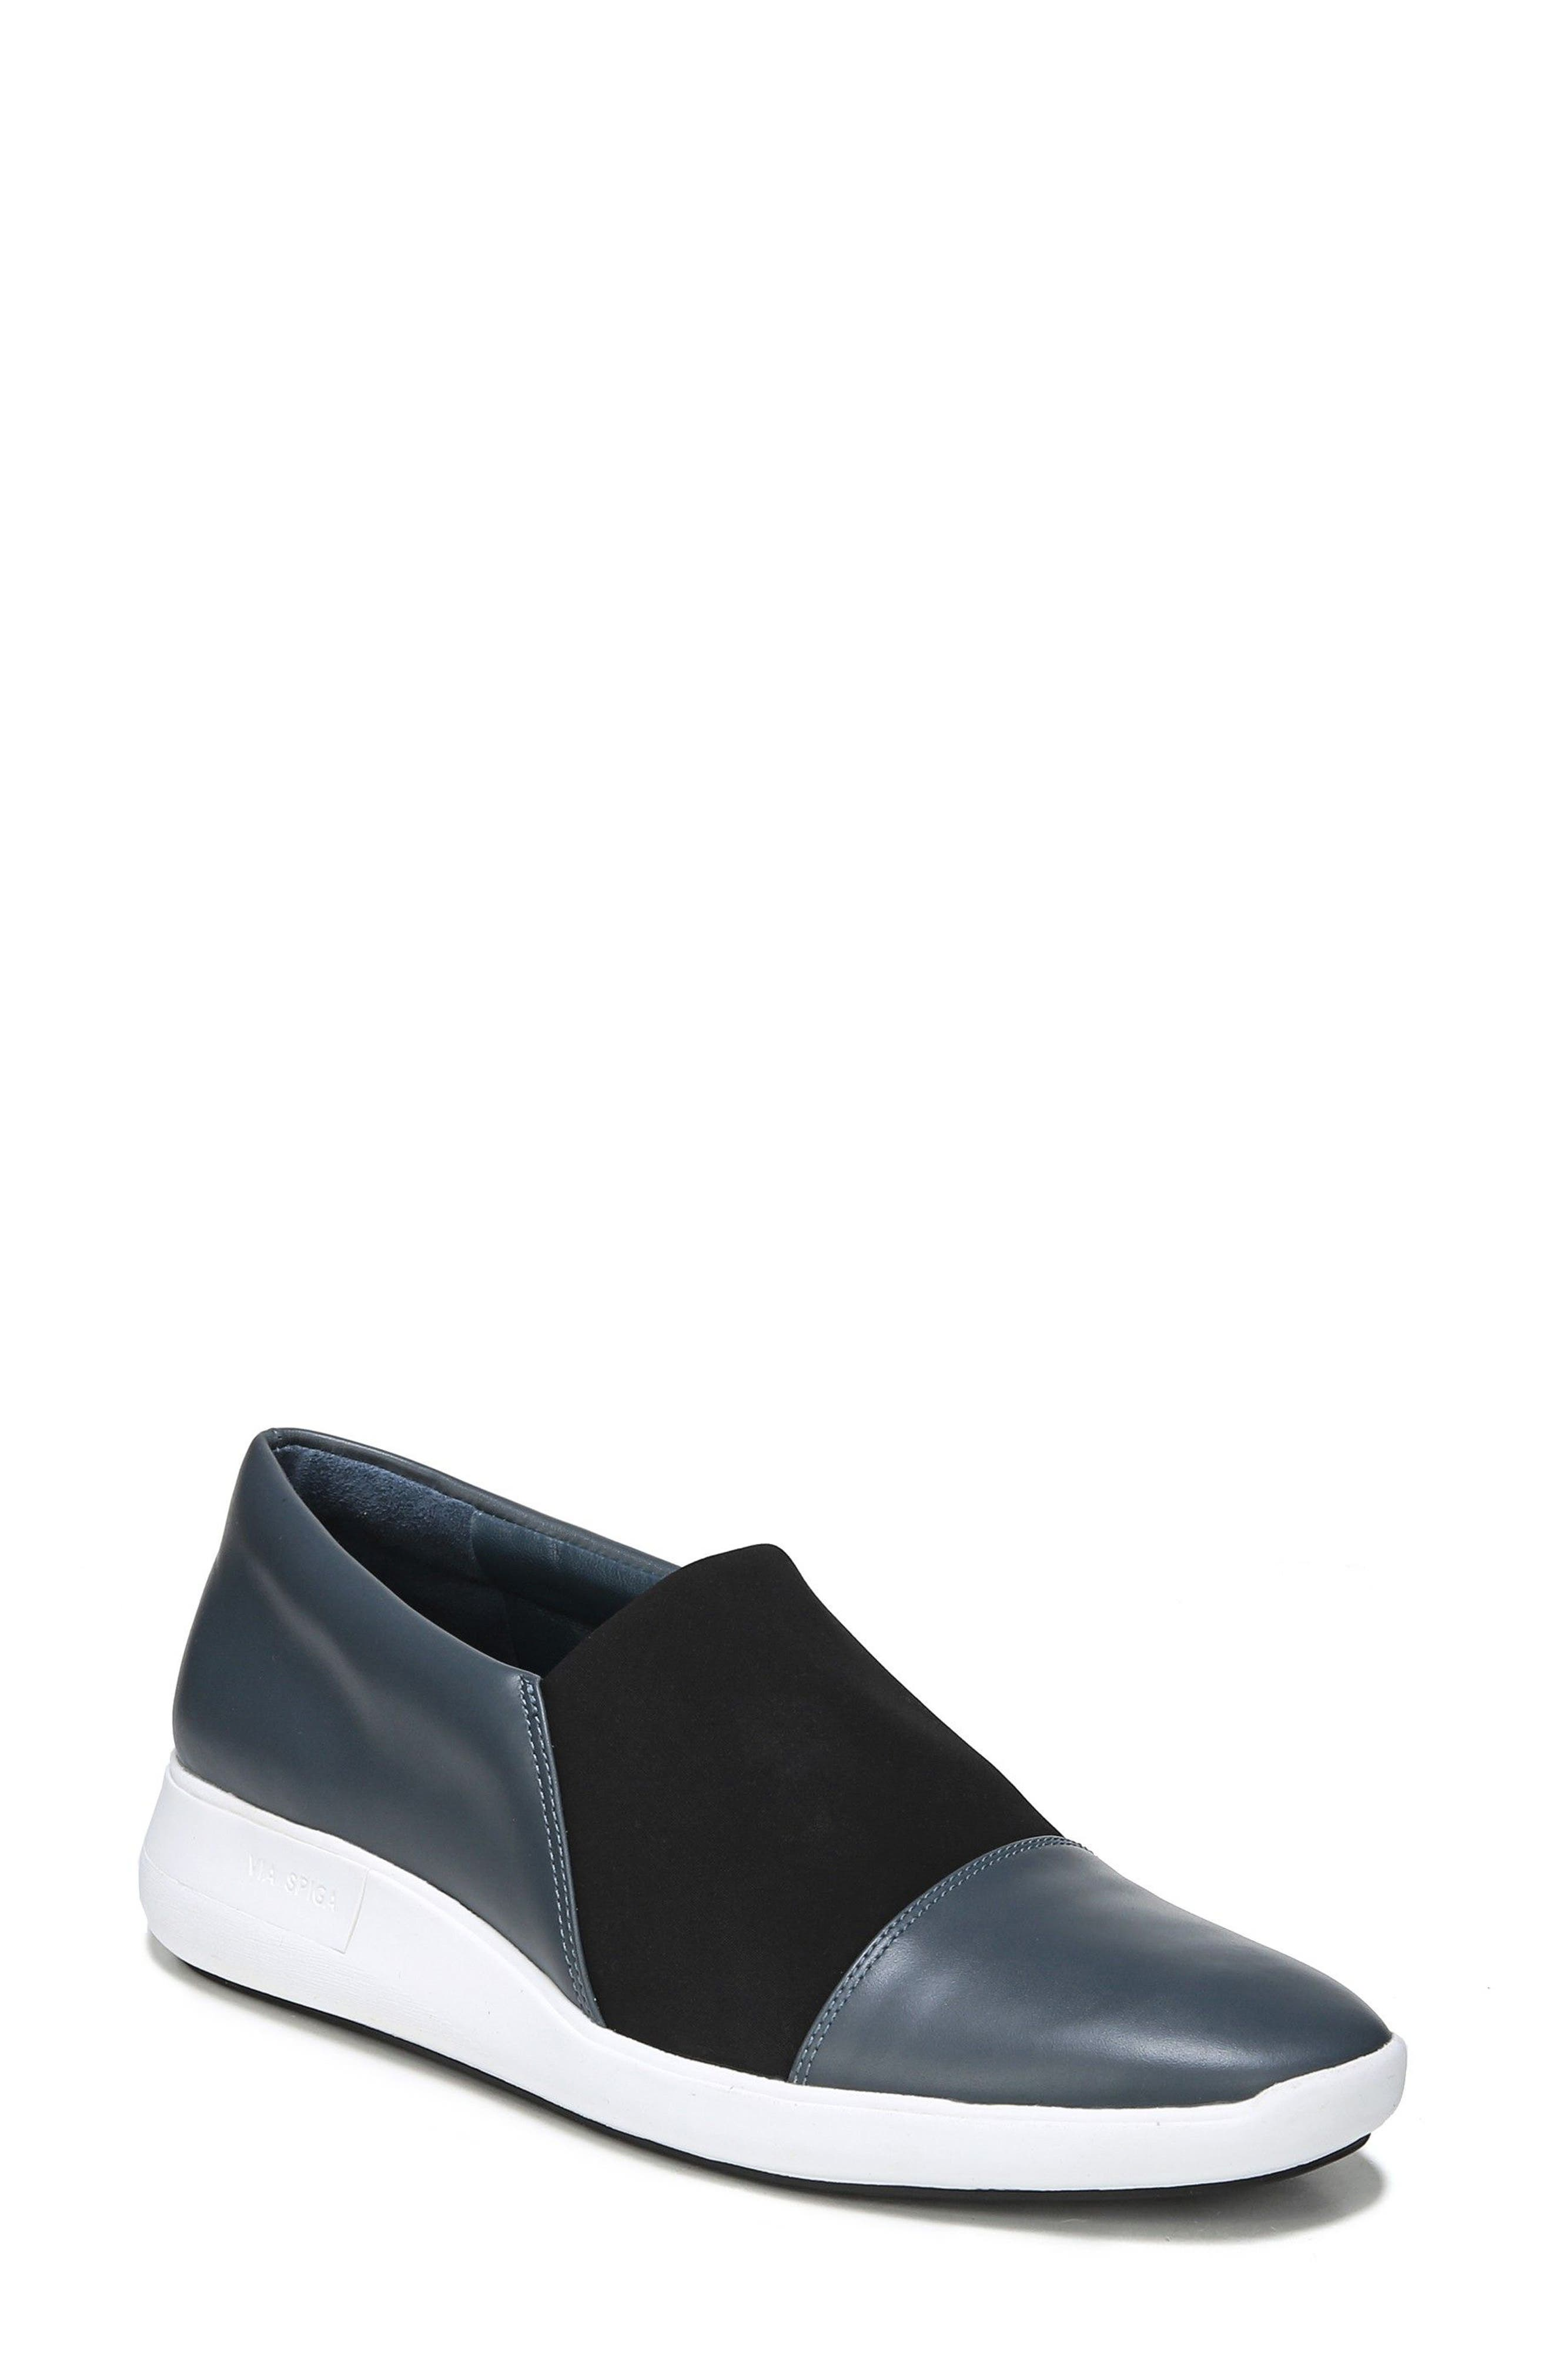 Morgan Slip-On Sneaker,                         Main,                         color, Air Force Blue Leather